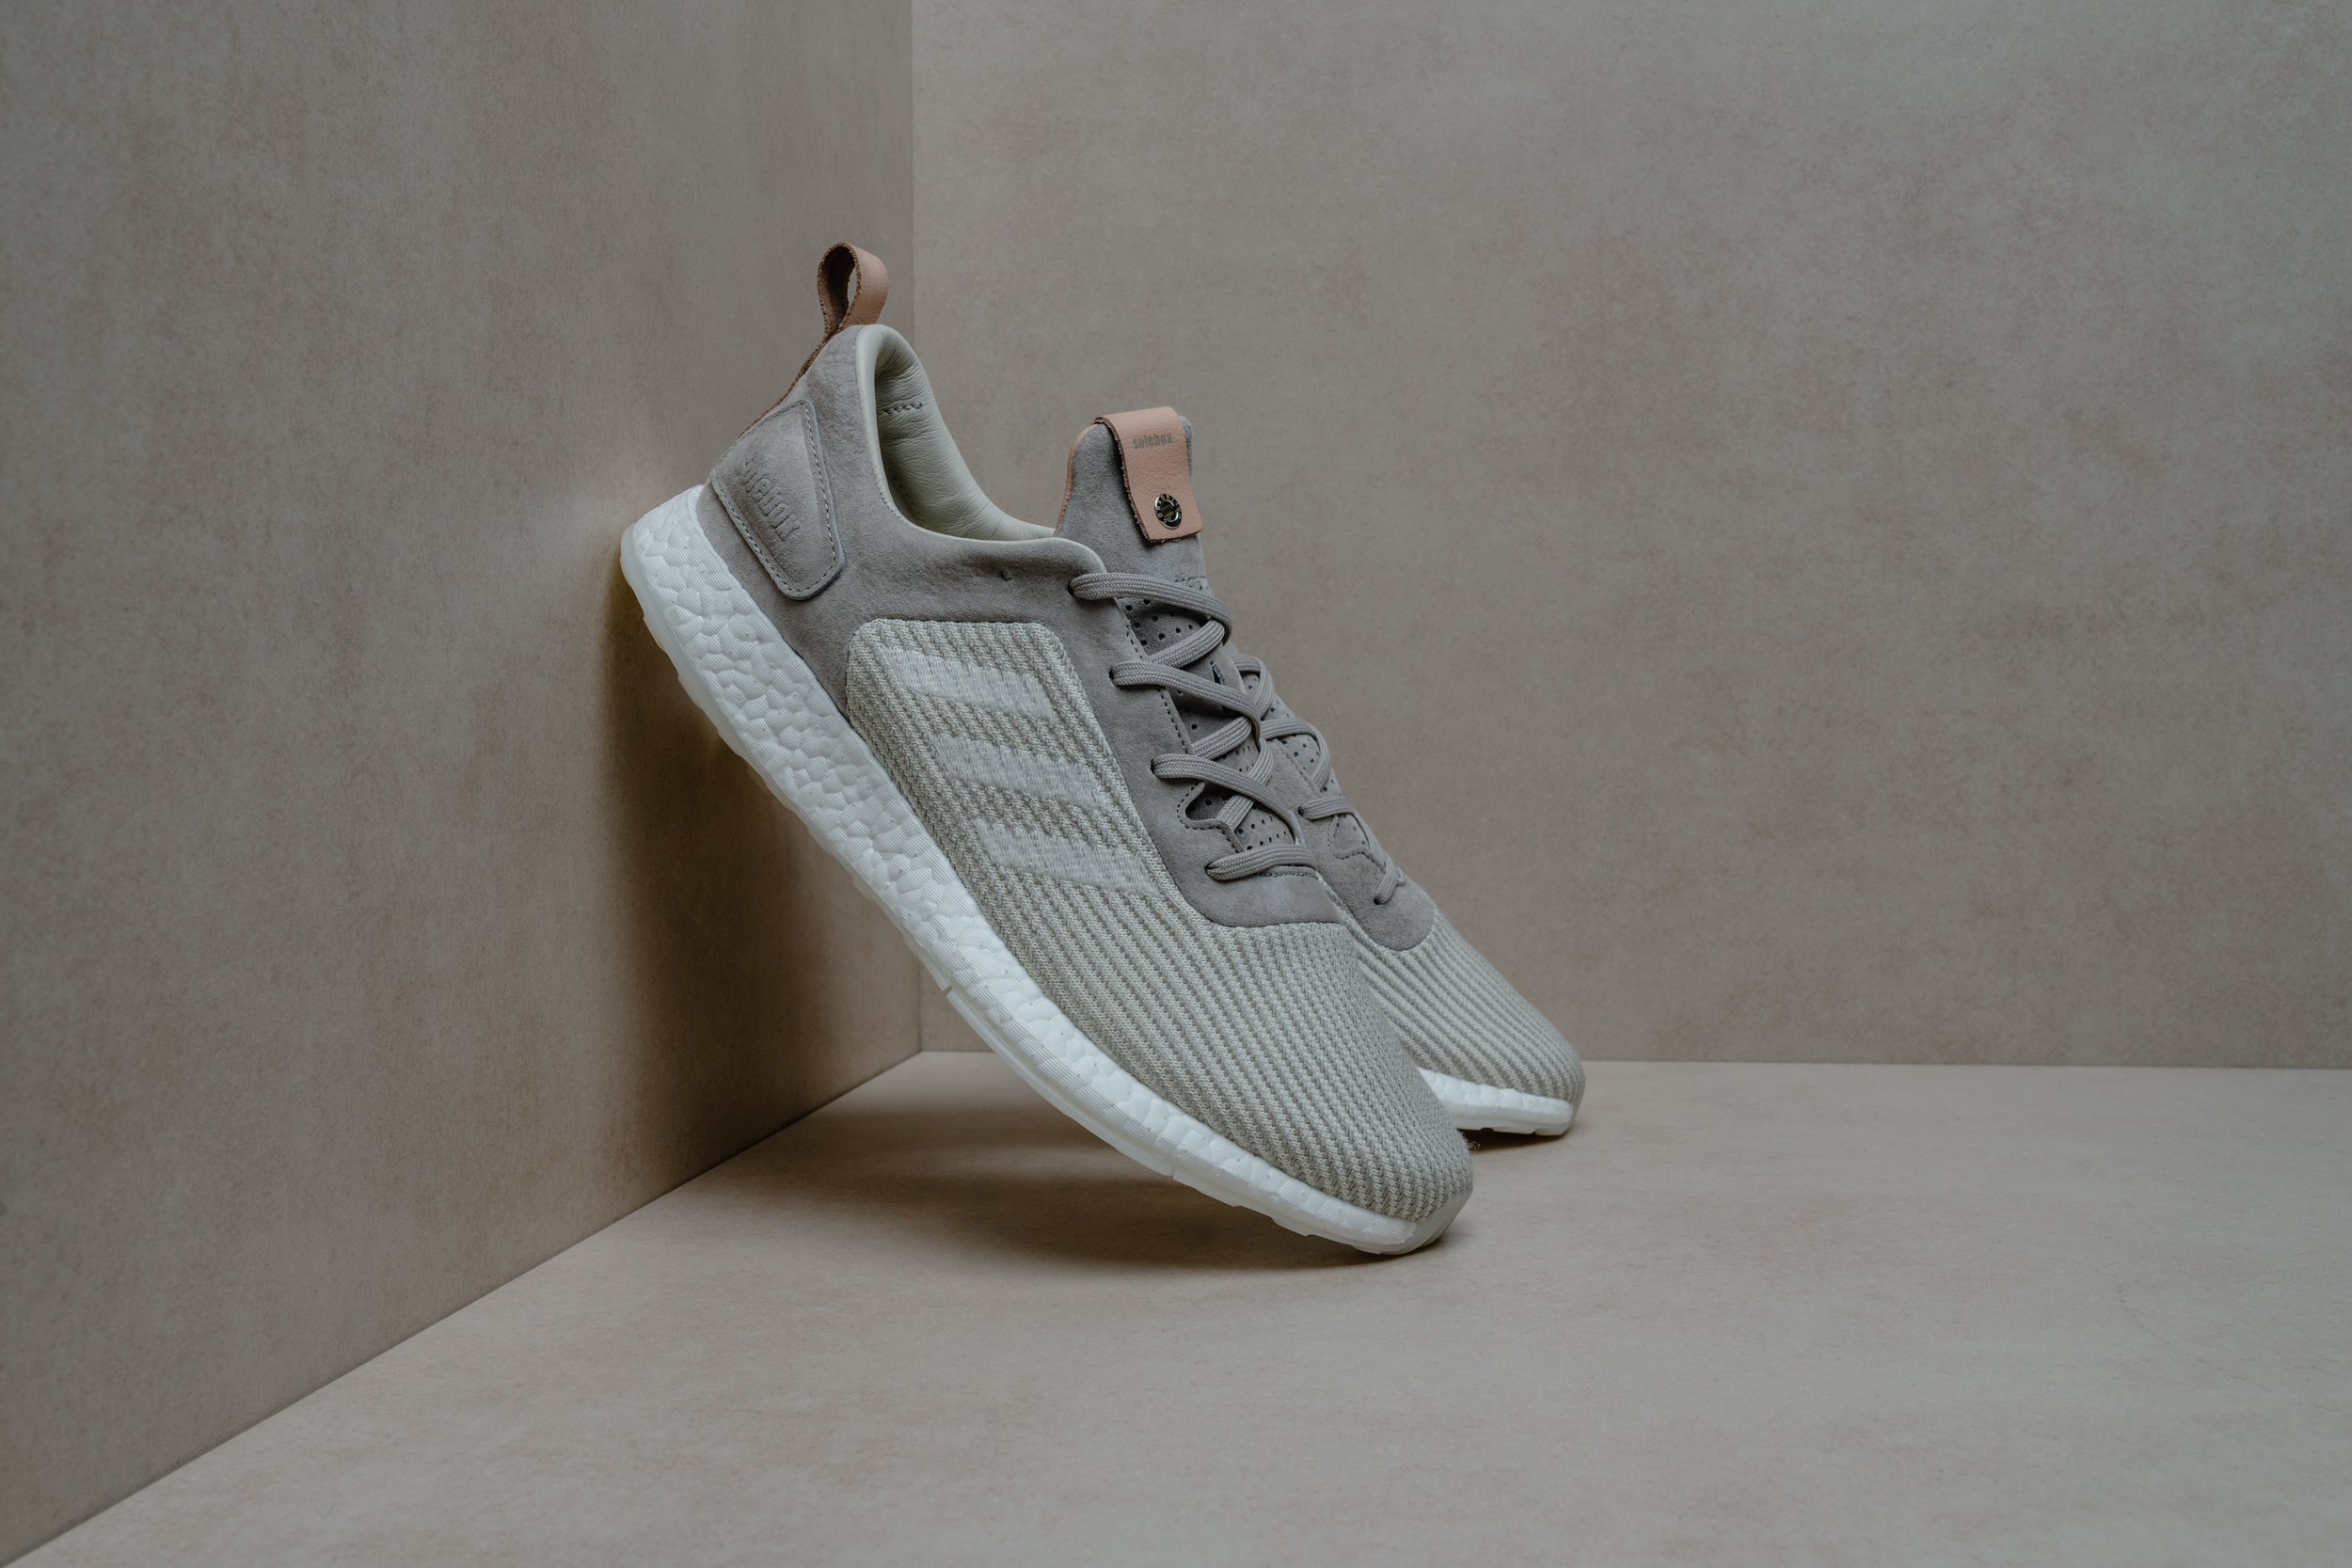 654dbc76e Available Now  adidas Consortium x solebox Italian Leathers Pack ...